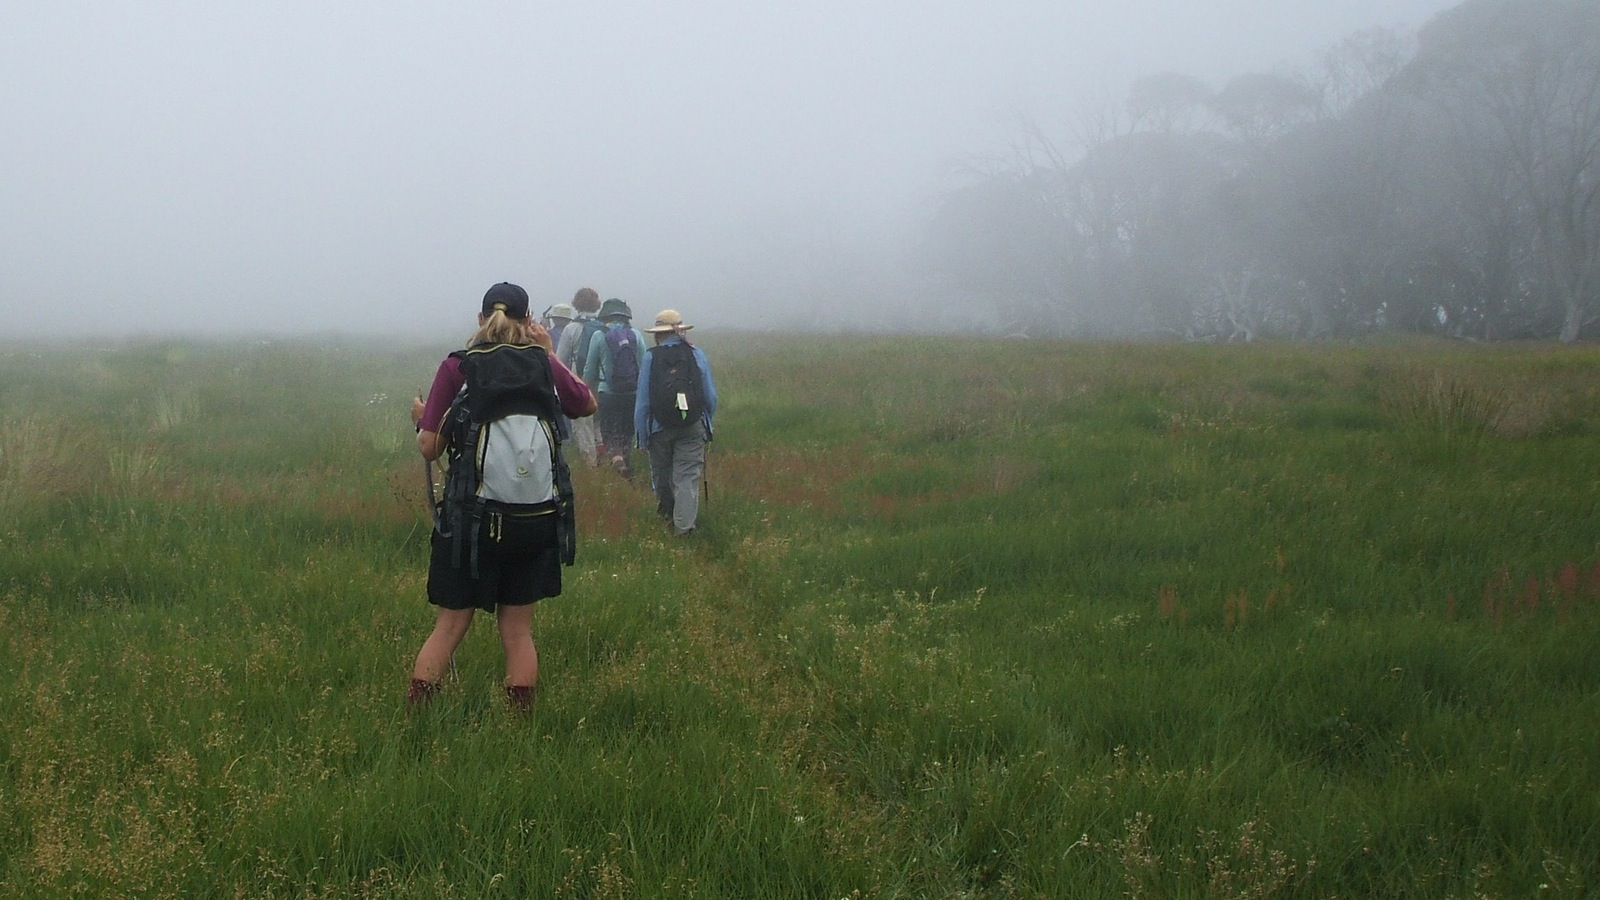 Walking across misty alpine plains